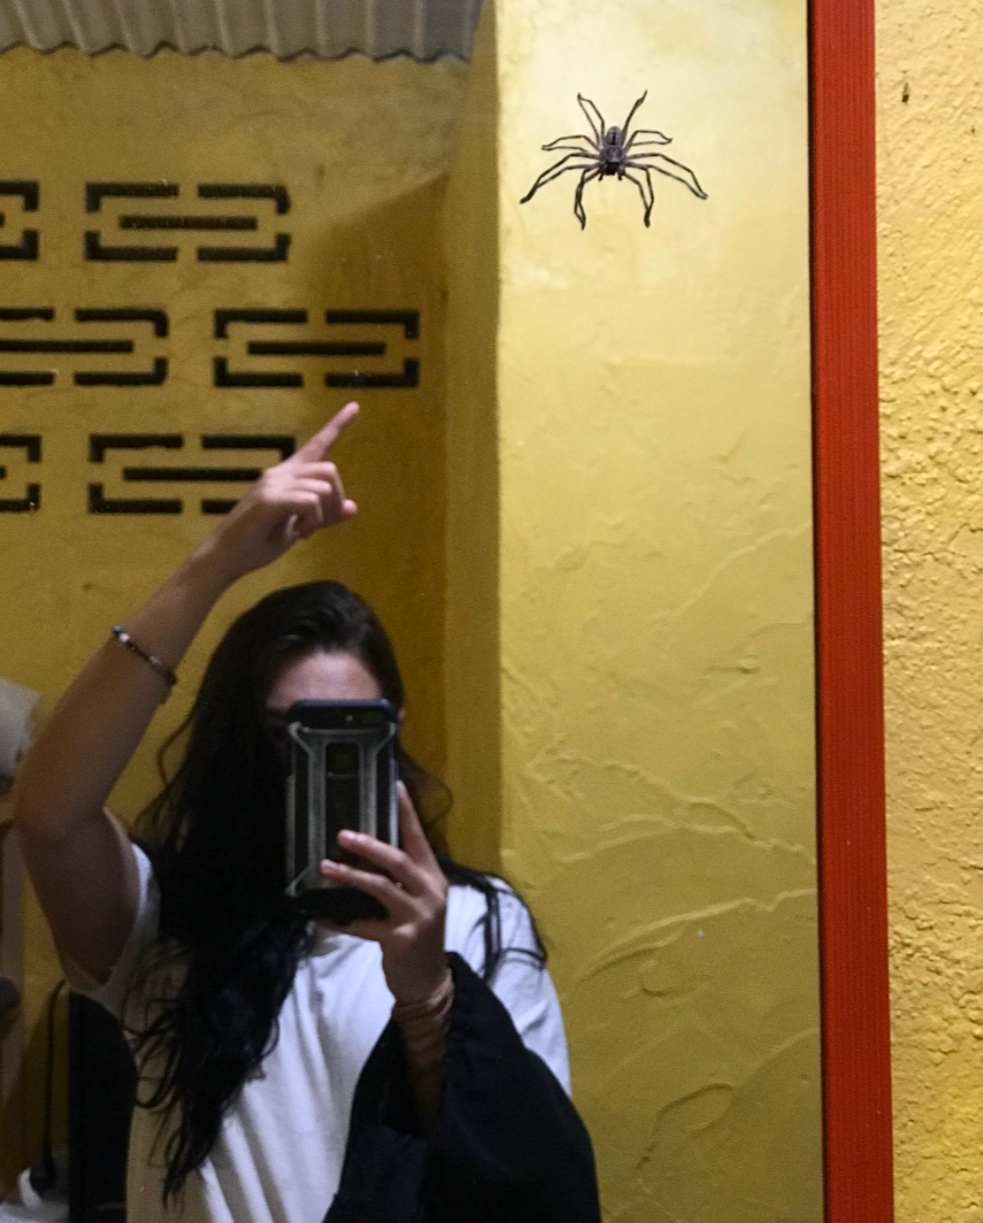 Just one of the gigantic spiders living in our communal bathroom!